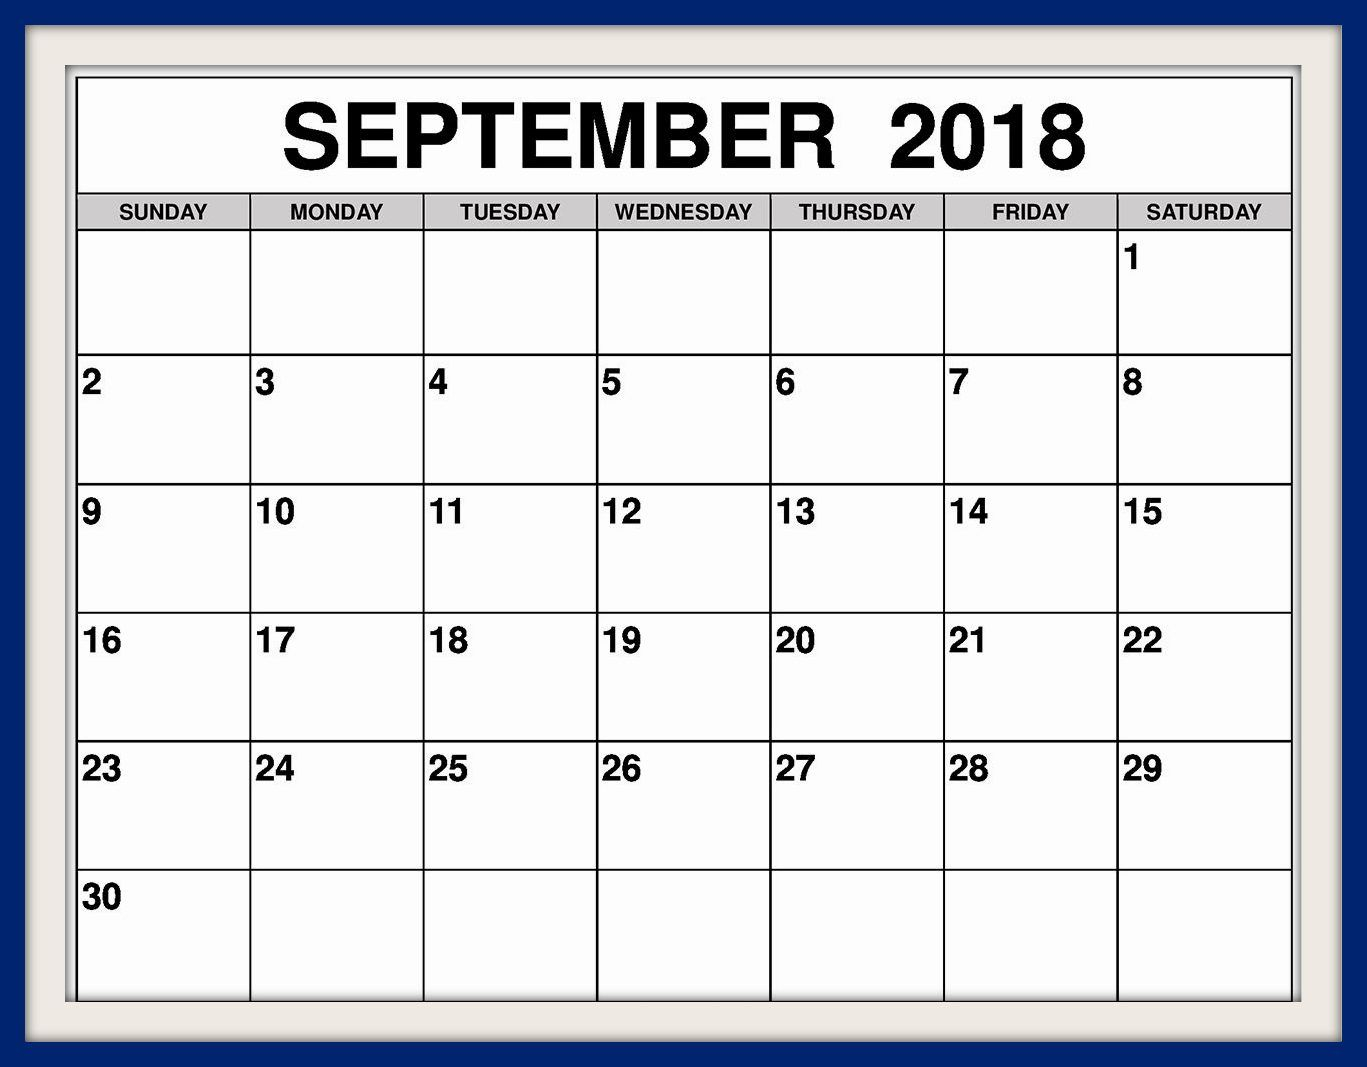 September 2018 Calendar Australia Printable Template inside 2018 Calendar Australia Printable